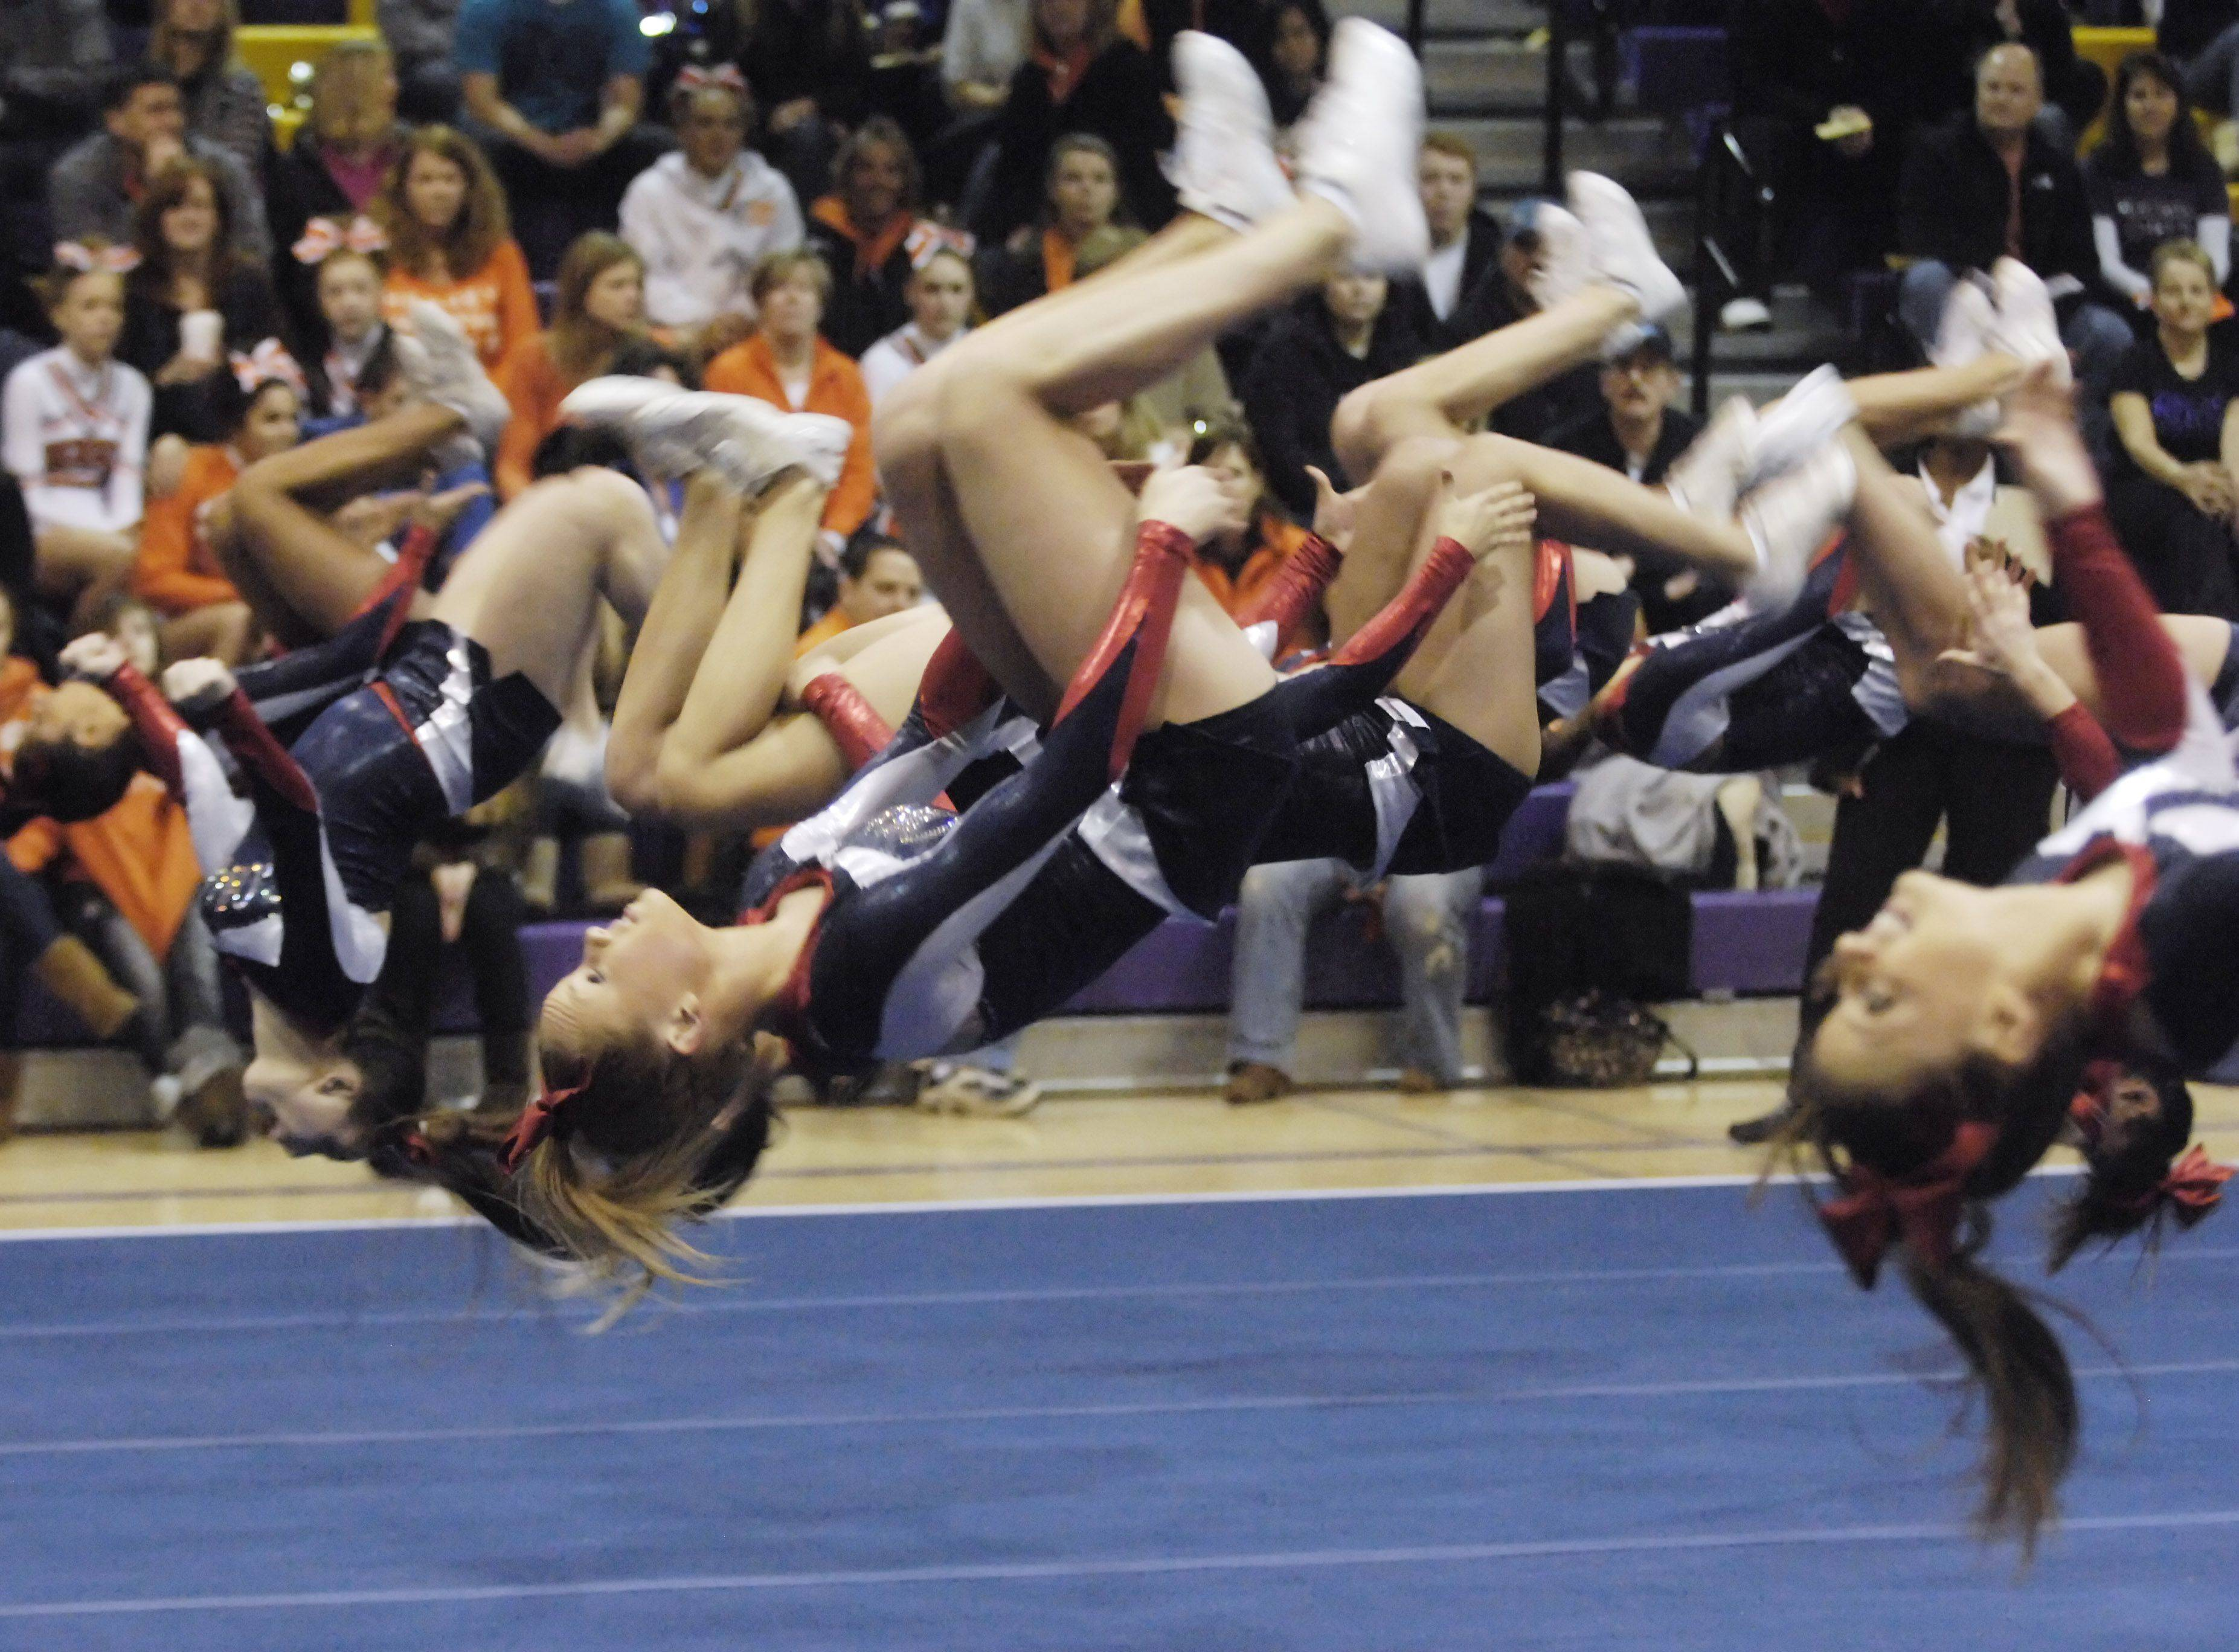 Conant competes during Saturday's cheerleading sectional hosted by Rolling Meadows High School.